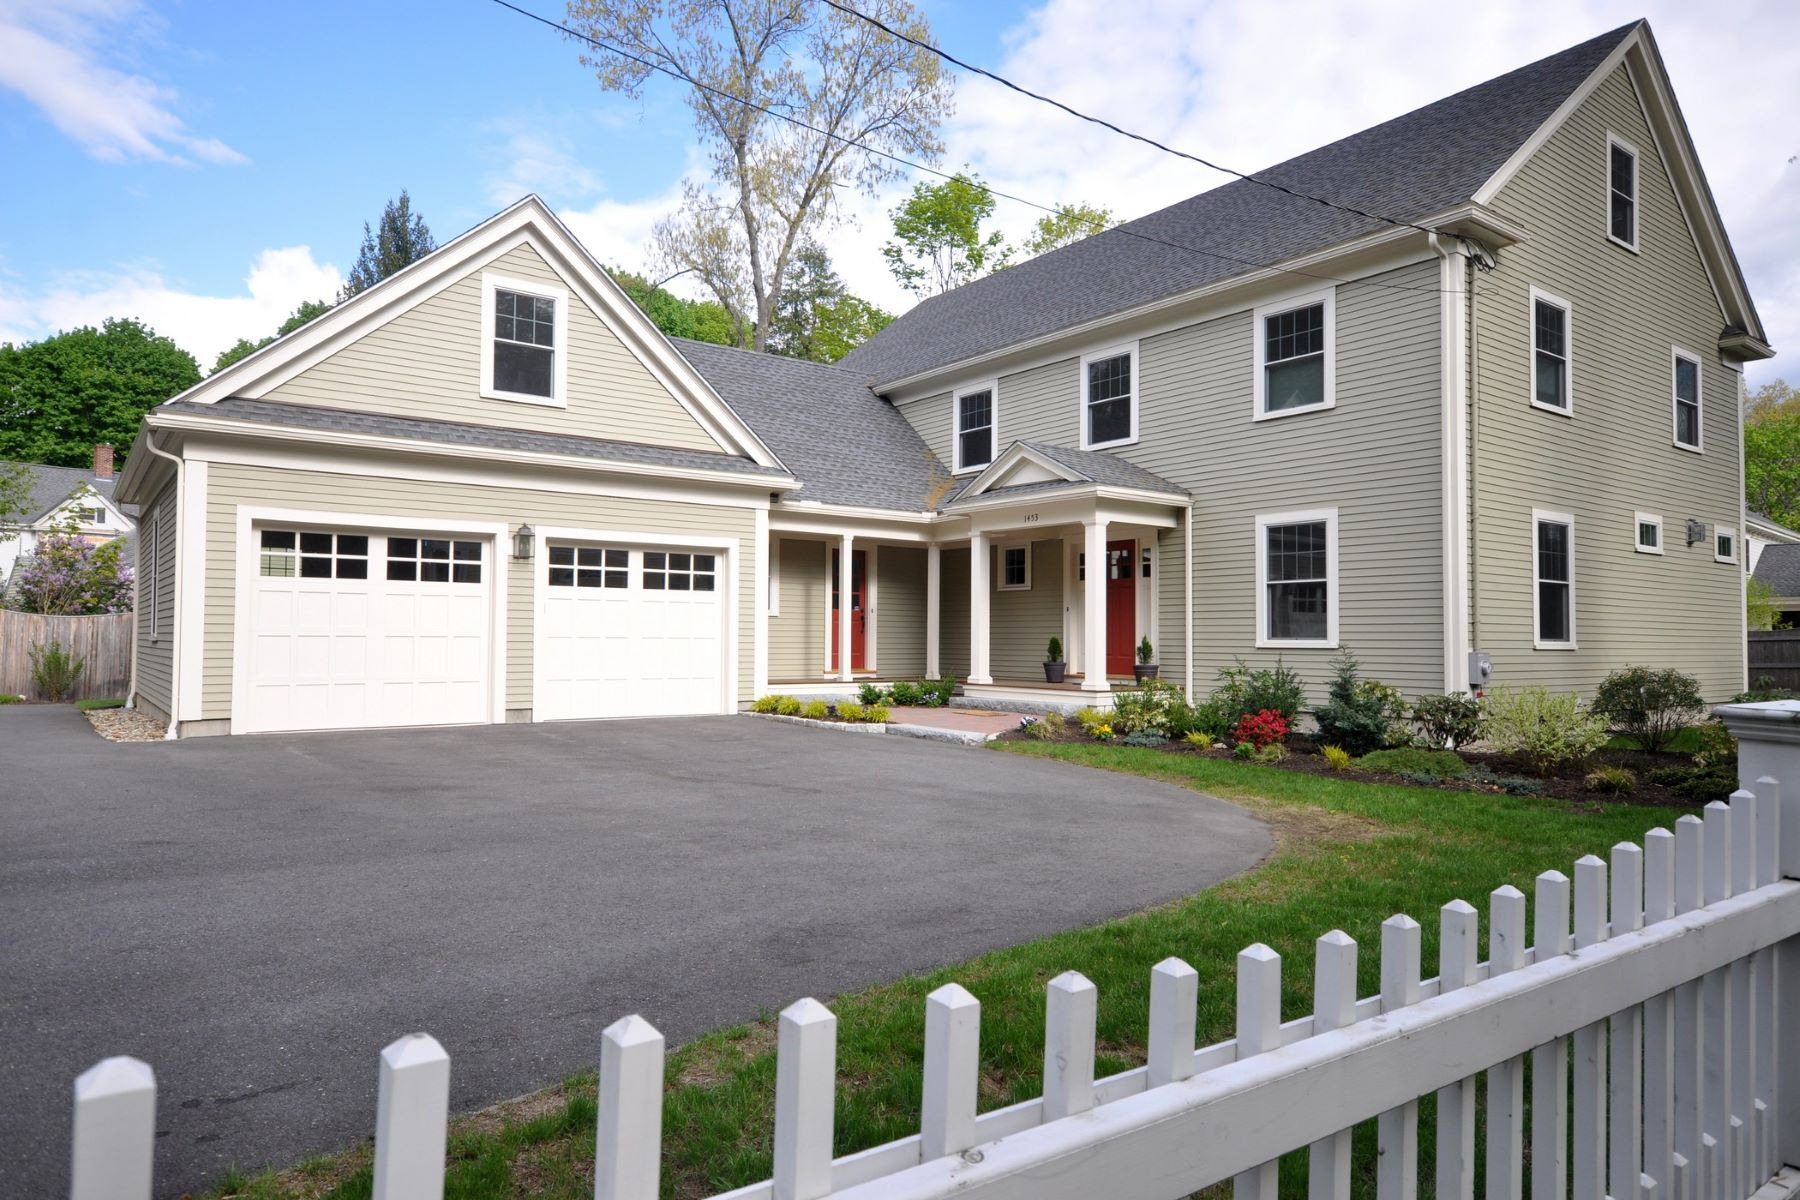 Single Family Home for Sale at Like New Colonial by Boynton/Brennan Builders 1453 Main Street Concord, Massachusetts, 01742 United States